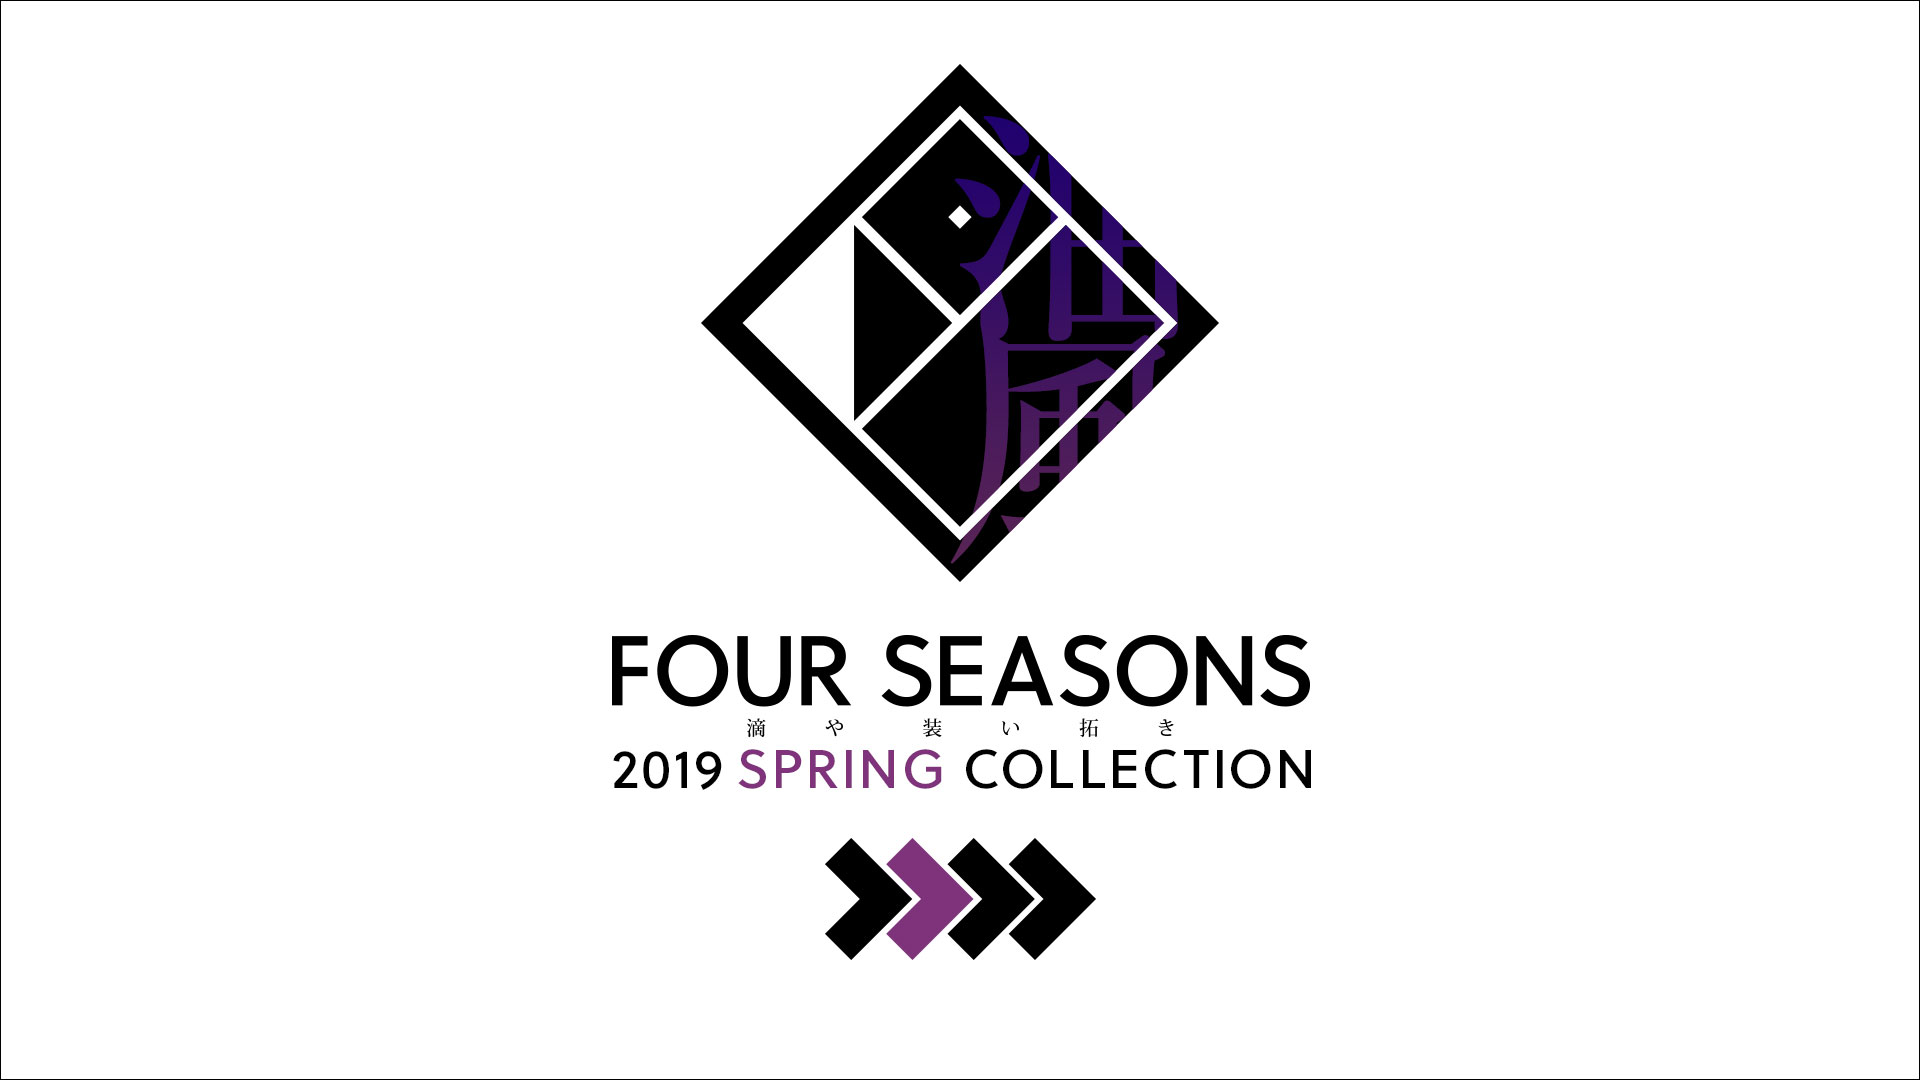 [PHOTO:FOUR SEASONS 2019 SPRING COLLECTION]